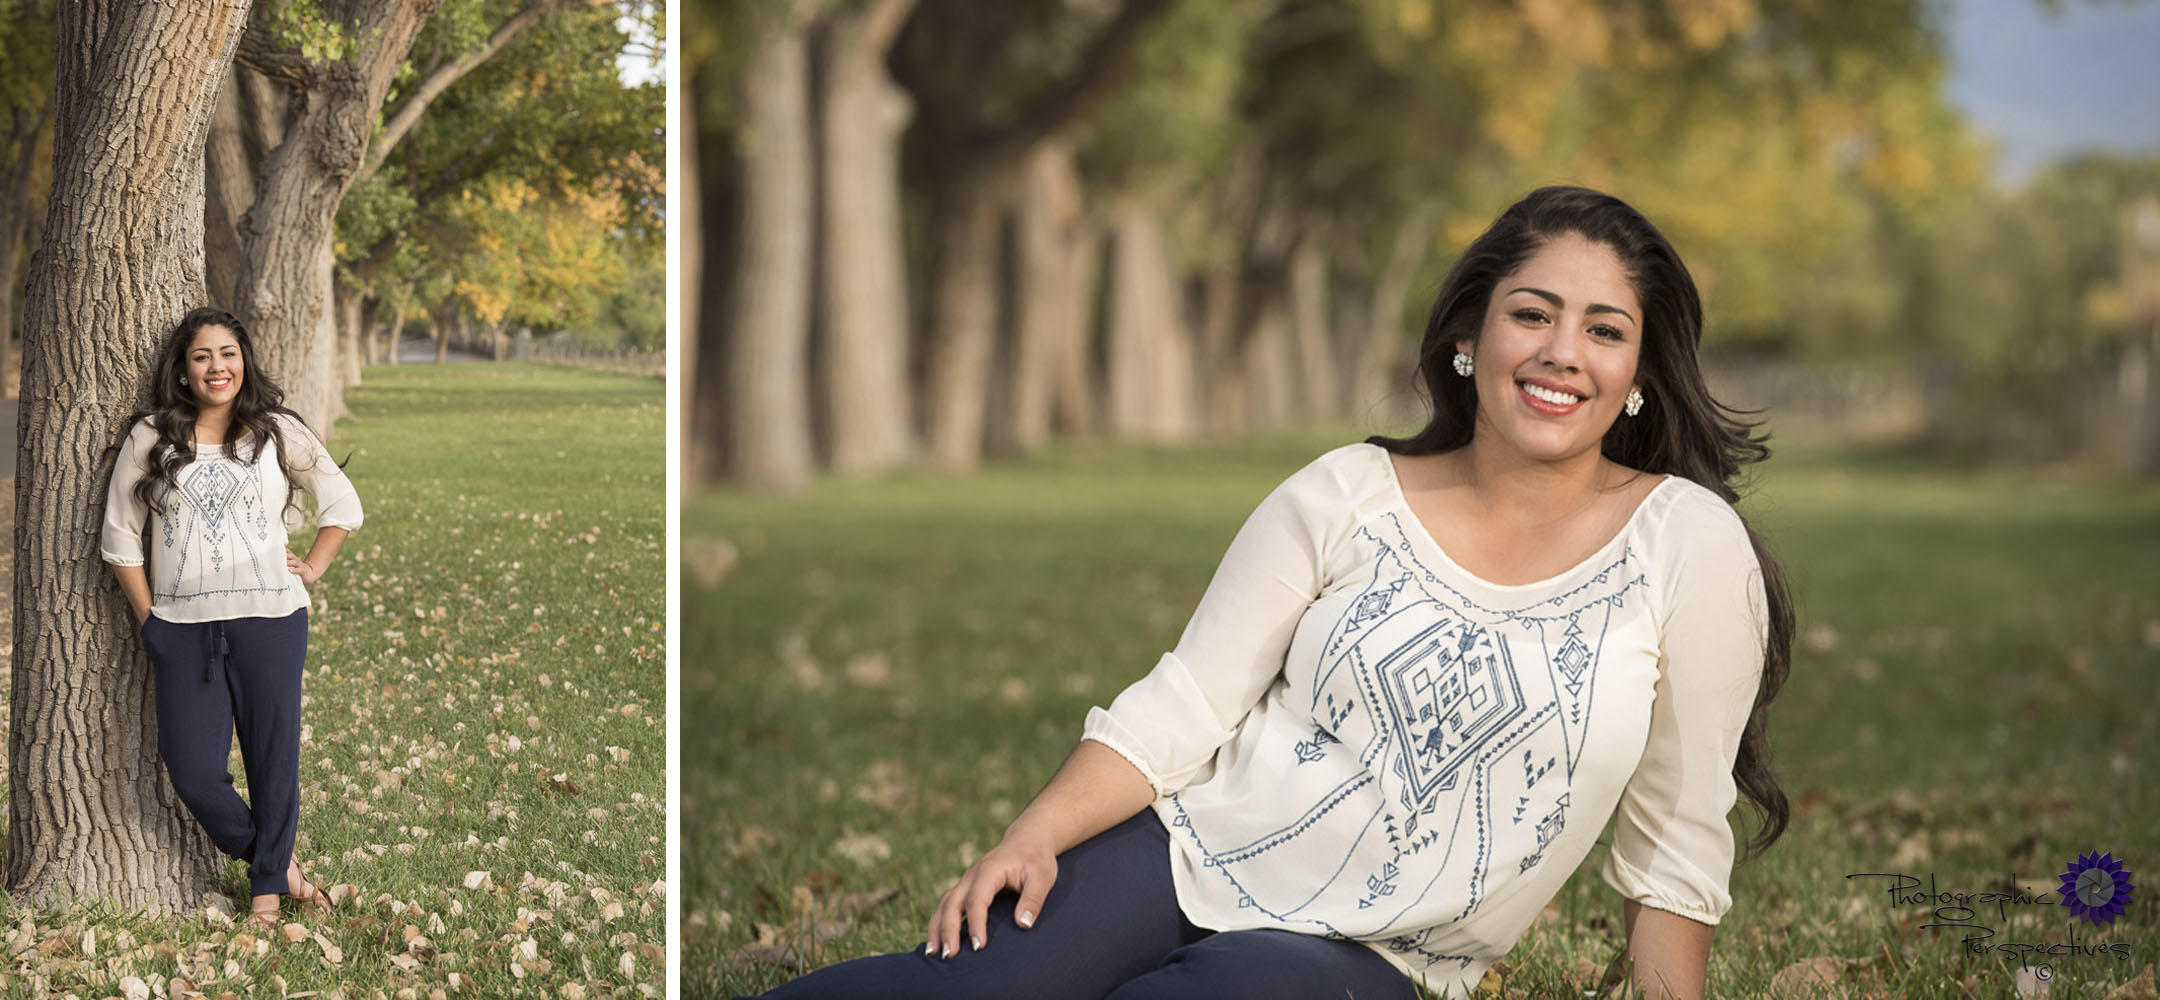 Photographic Perspectives | Fall Senior Portrait | Corrales New Mexico Senior Portrait | Albuquerque Photographers |Creative Senior Photography